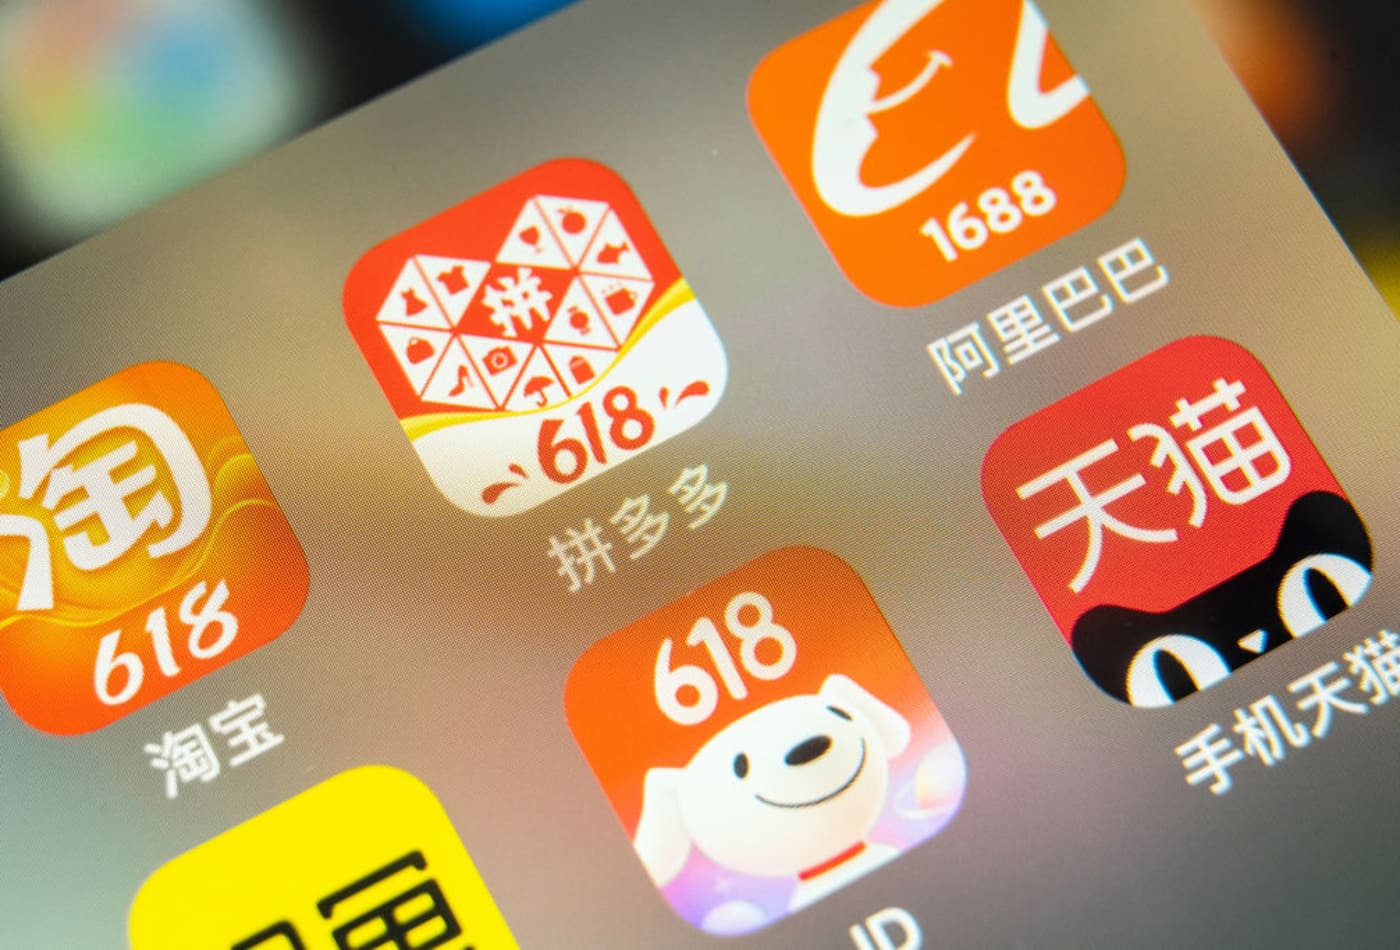 Morgan Stanley says there's value in China tech stocks, here are its top 5 picks